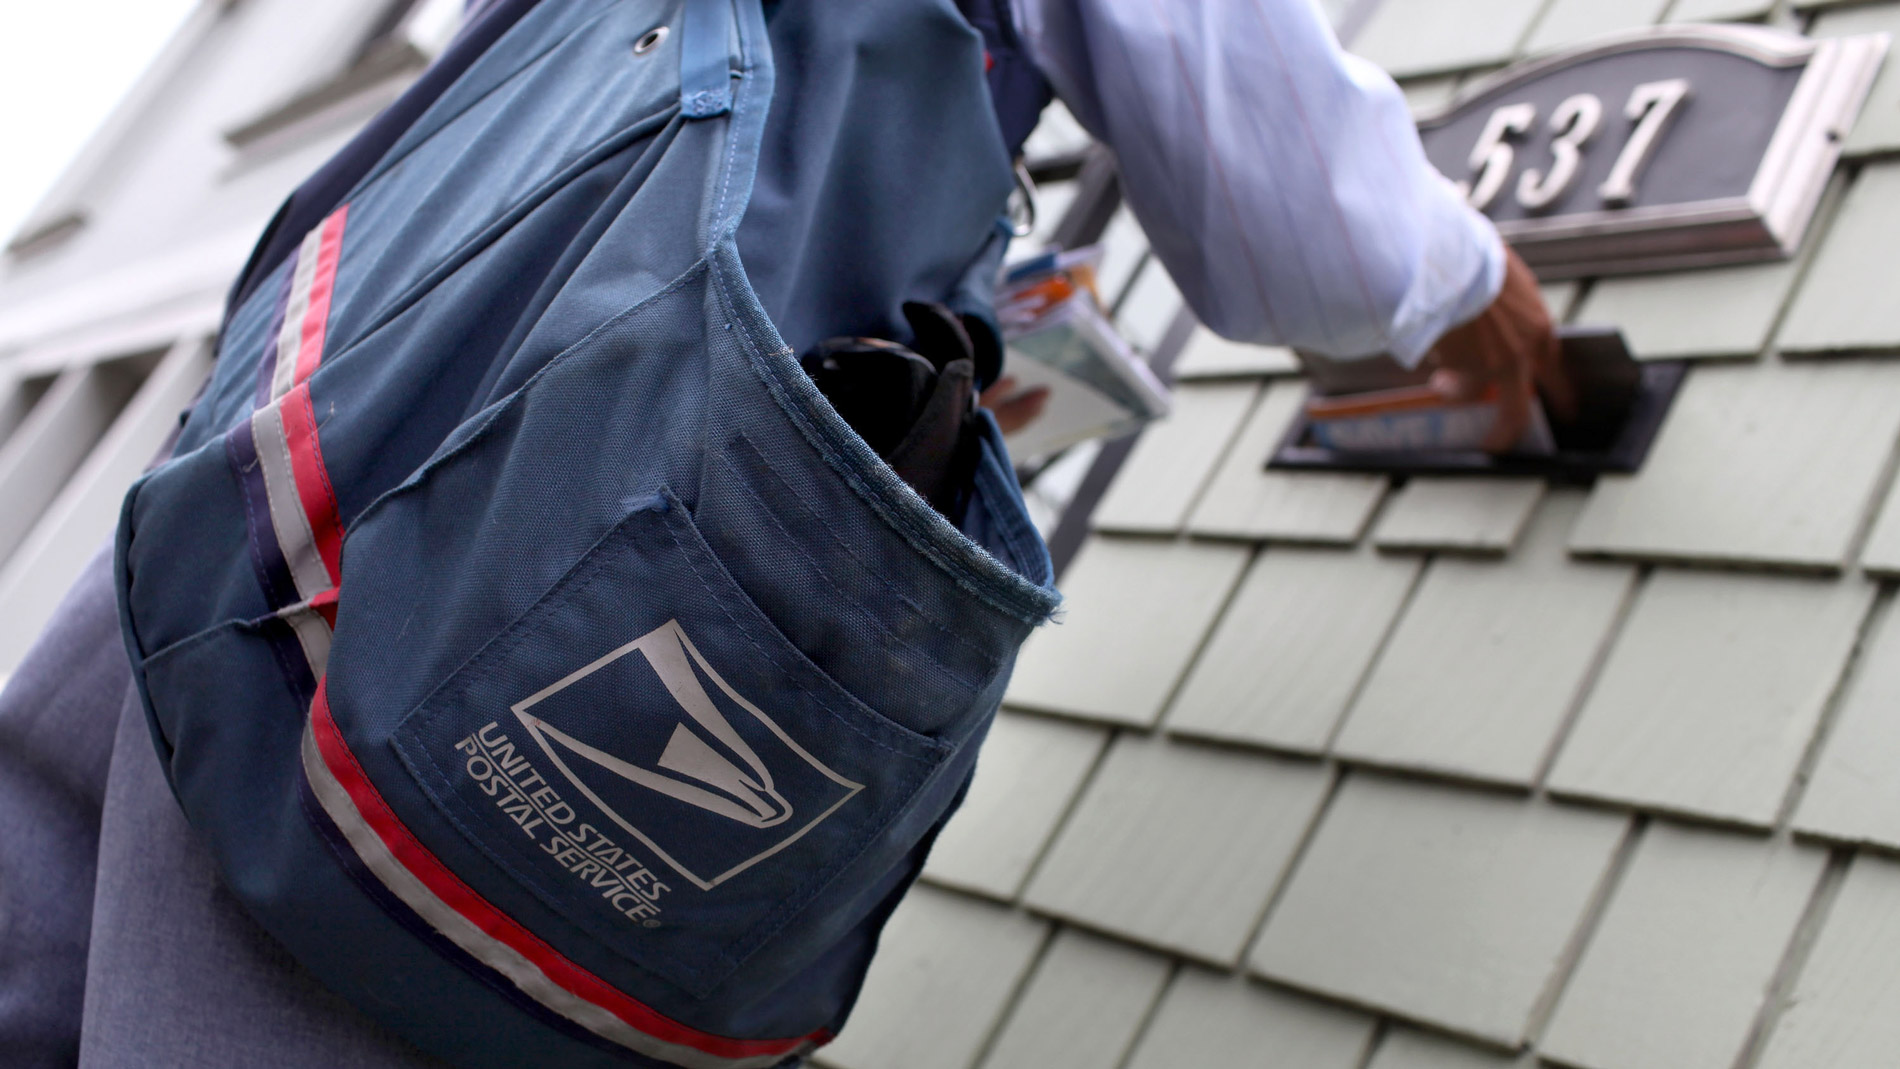 US Postal Service Mail Delivery